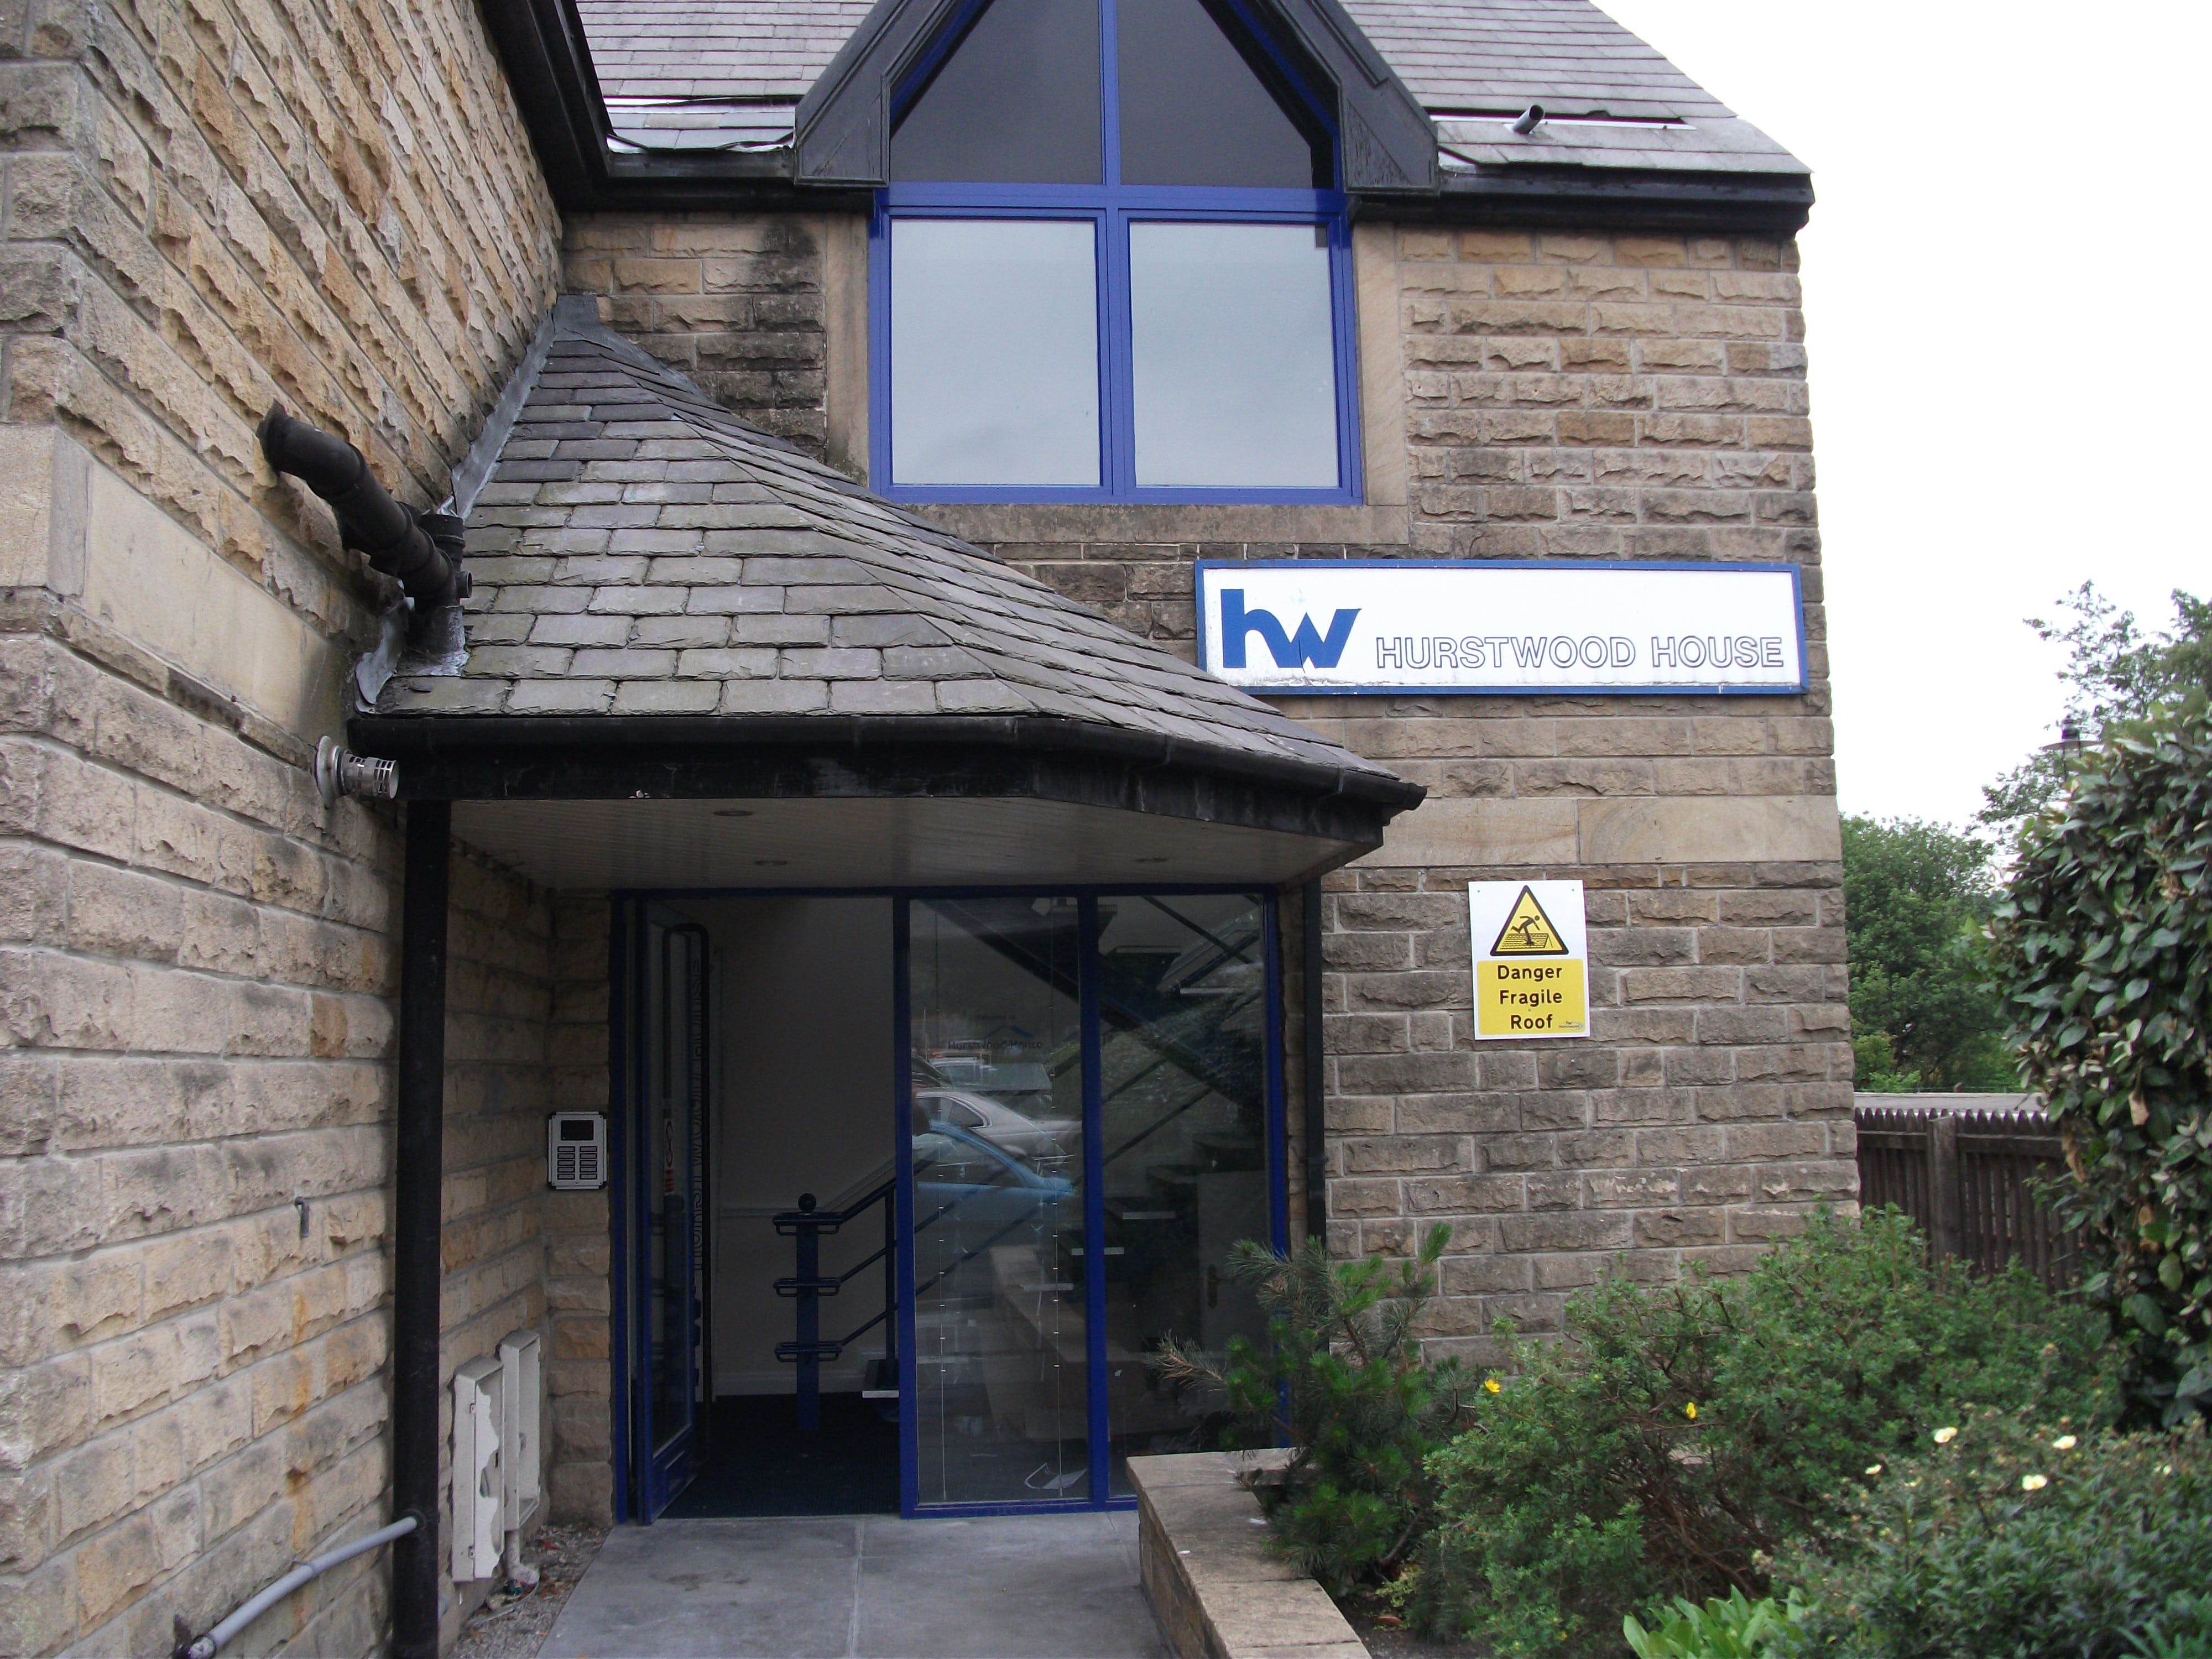 Station Court, New Hall Hey Road, Rossendale, Office / Retail / Leisure For Sale - Photo 018.jpg